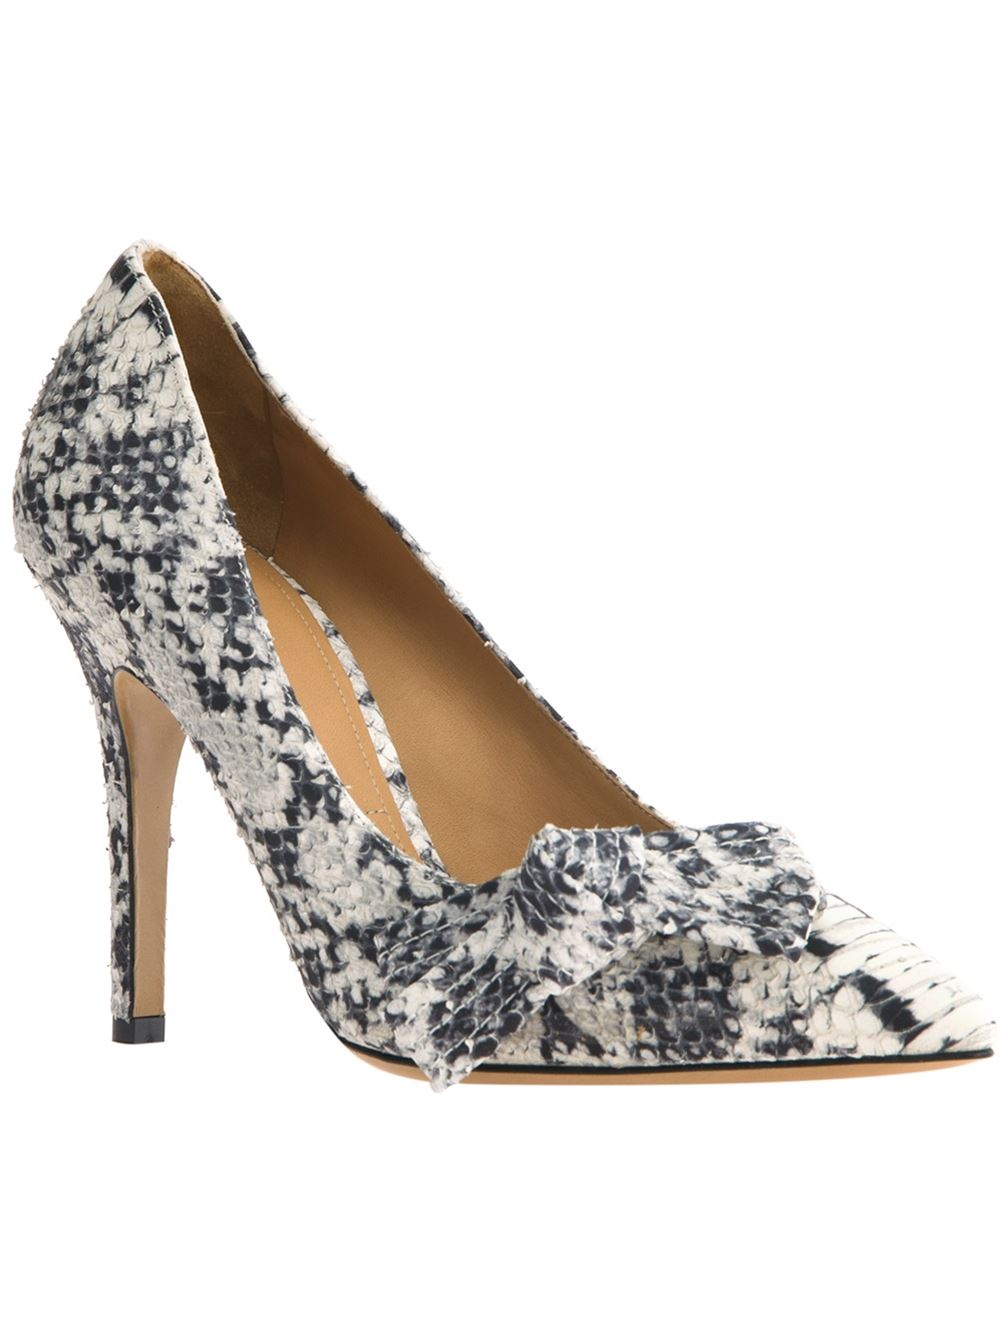 Isabel Marant 'poppy' Pump - Luisa World - Farfetch.com